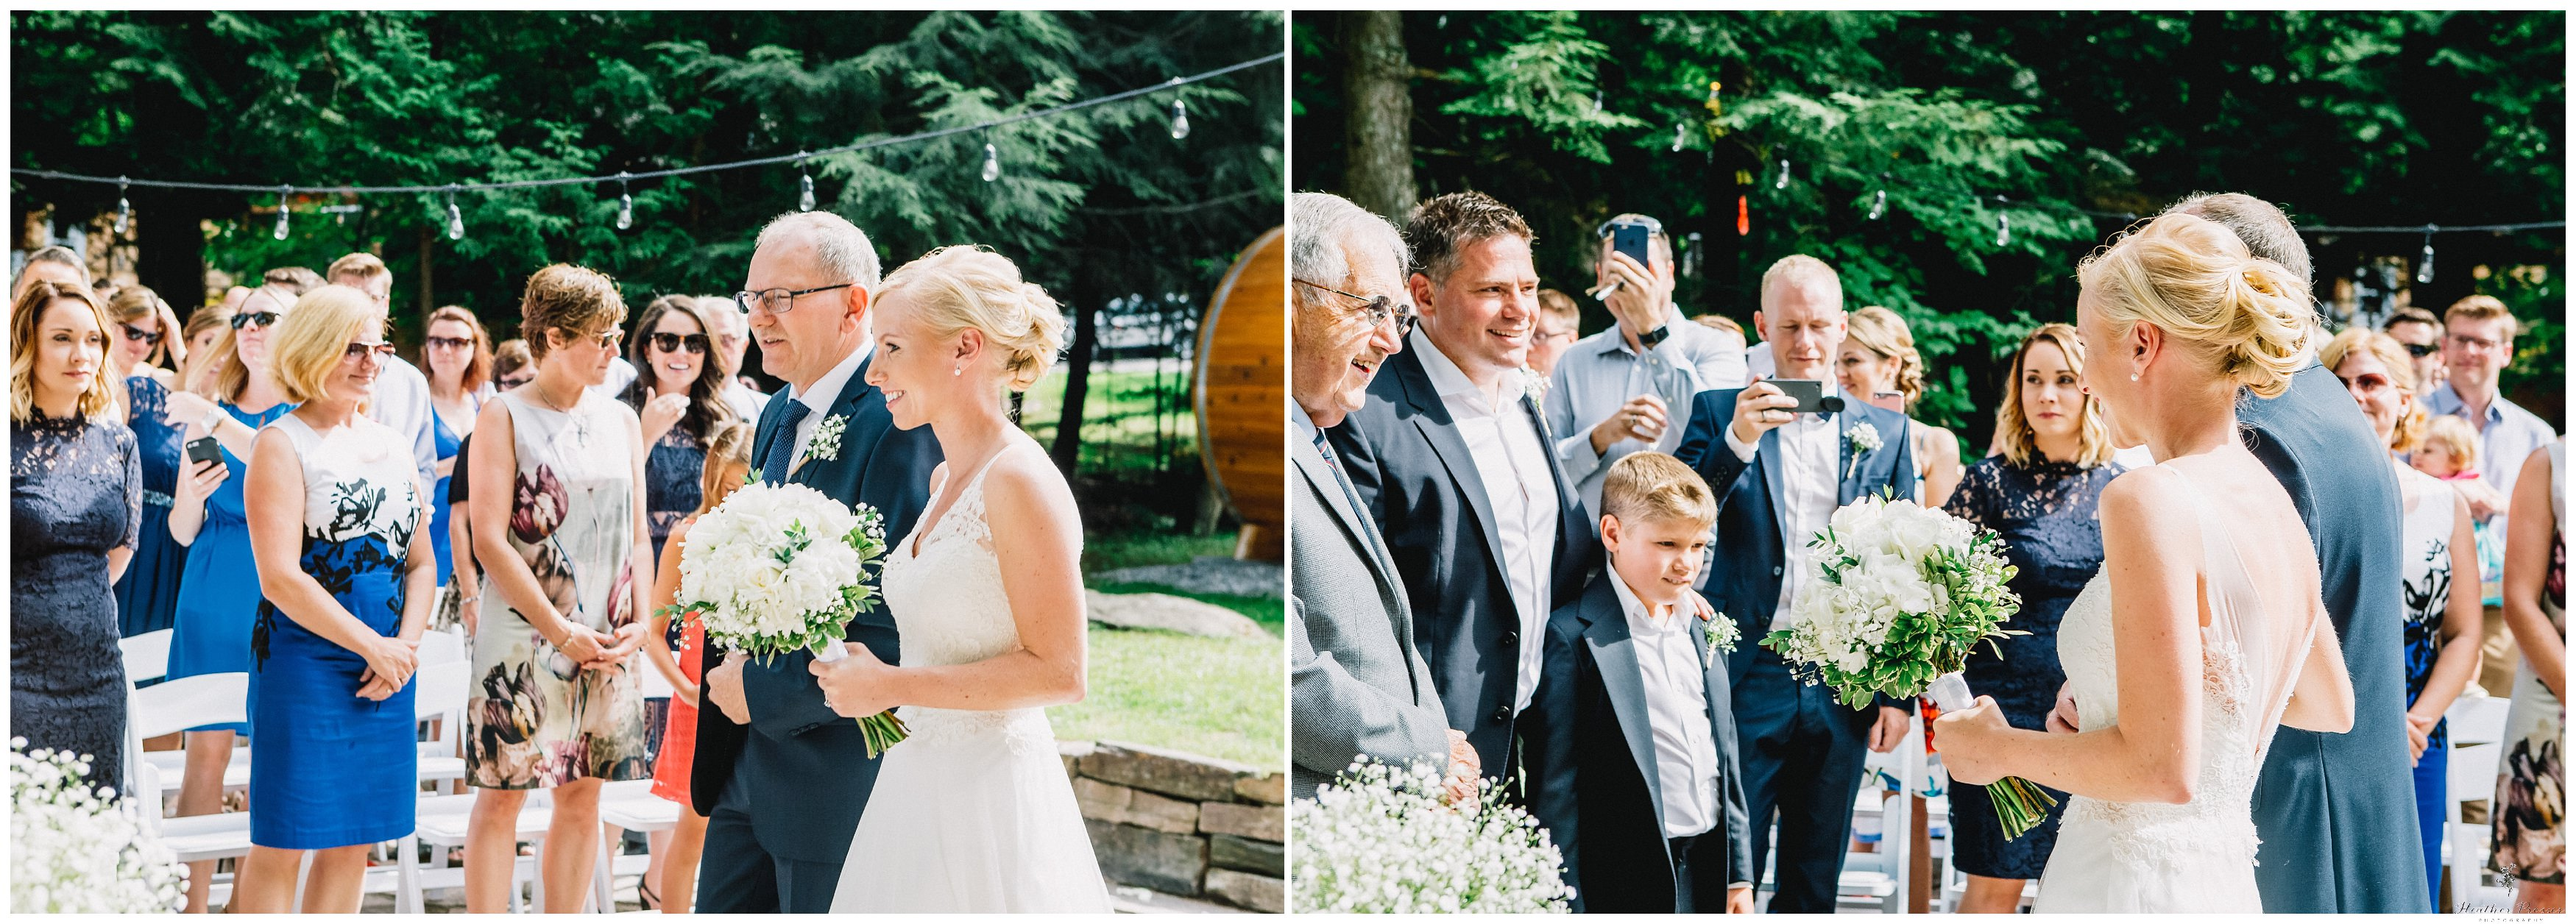 Haliburton Cottage Wedding_1264-1.jpg